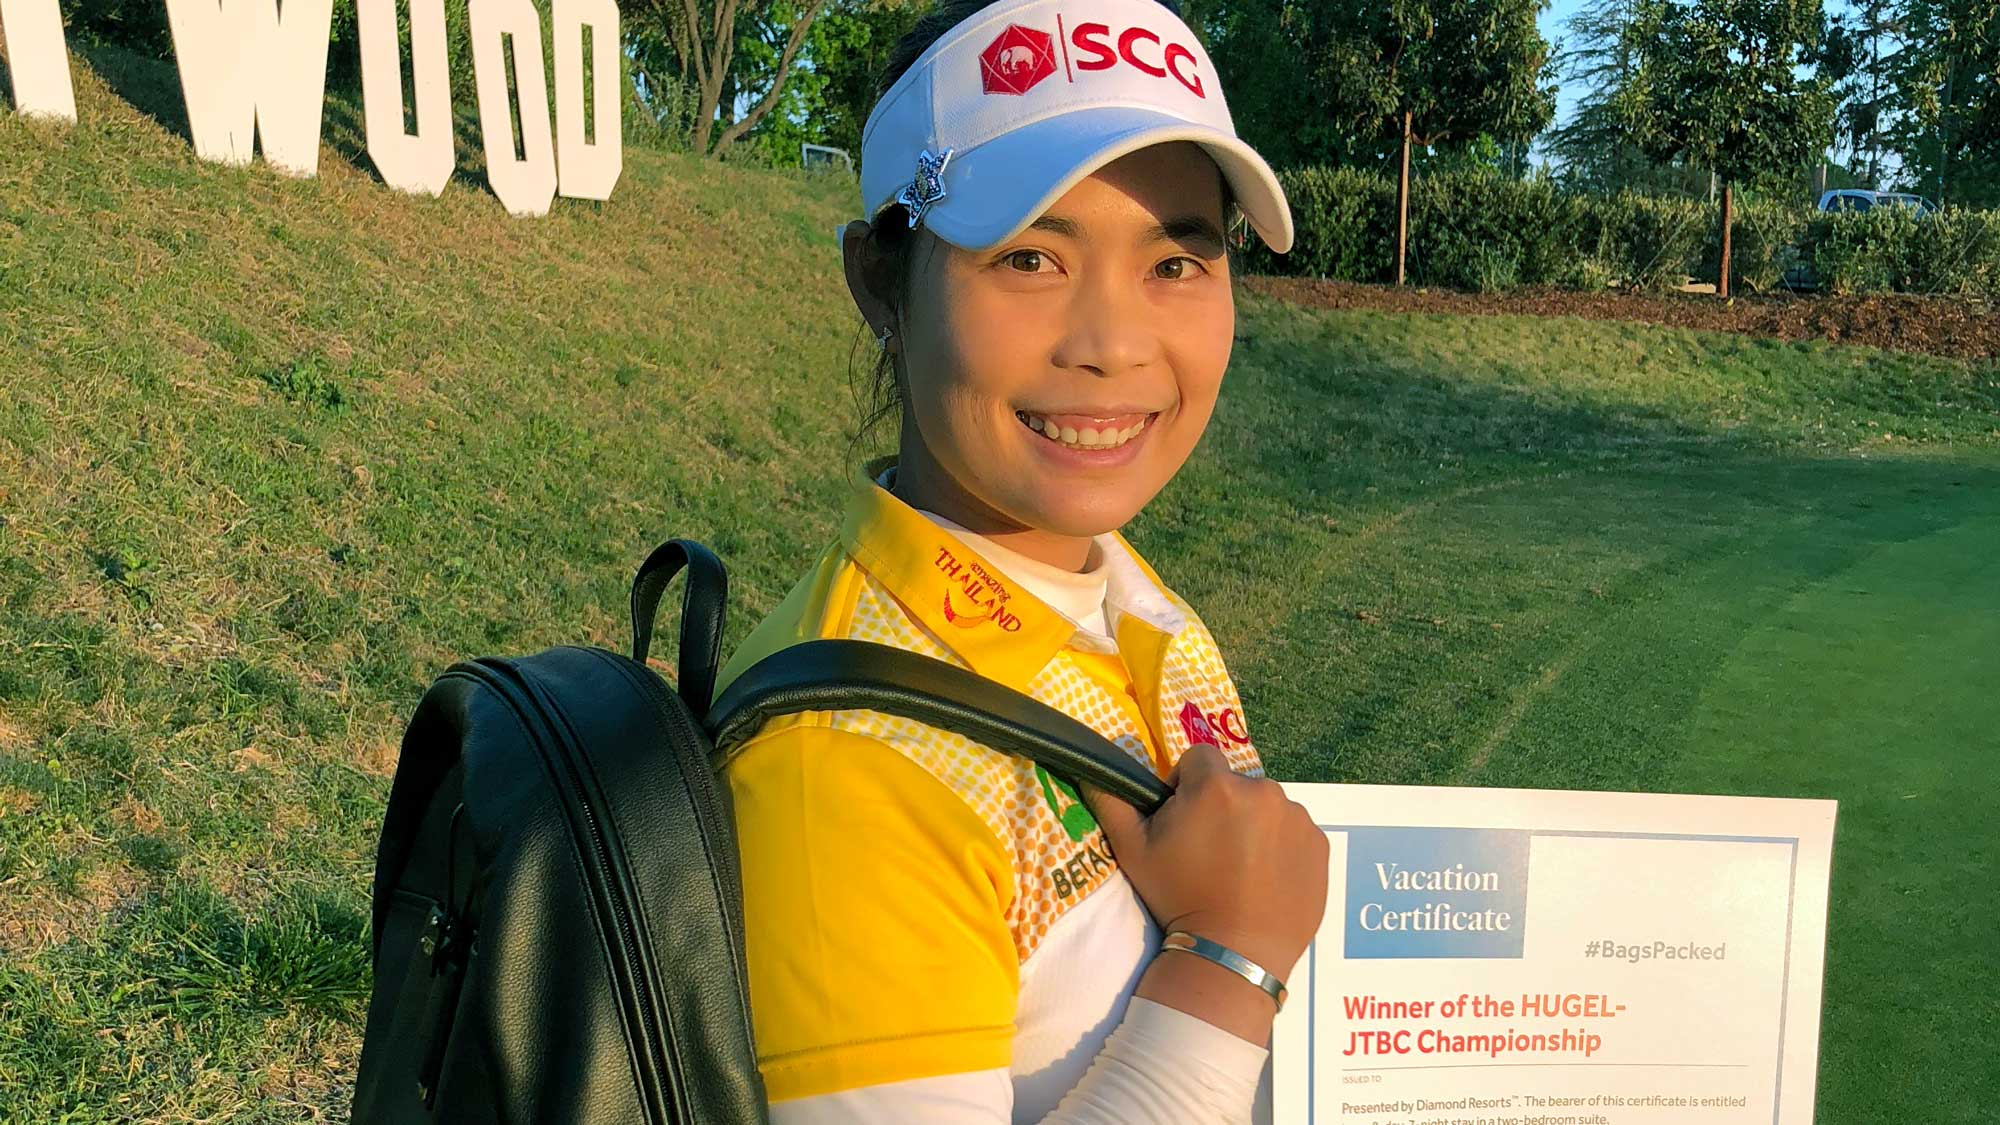 Moriya Jutanugarn has her #BagsPacked for the 2019 Diamond Resorts Tournament of Champions after her victory at the HUGEL-JTBC LA Open